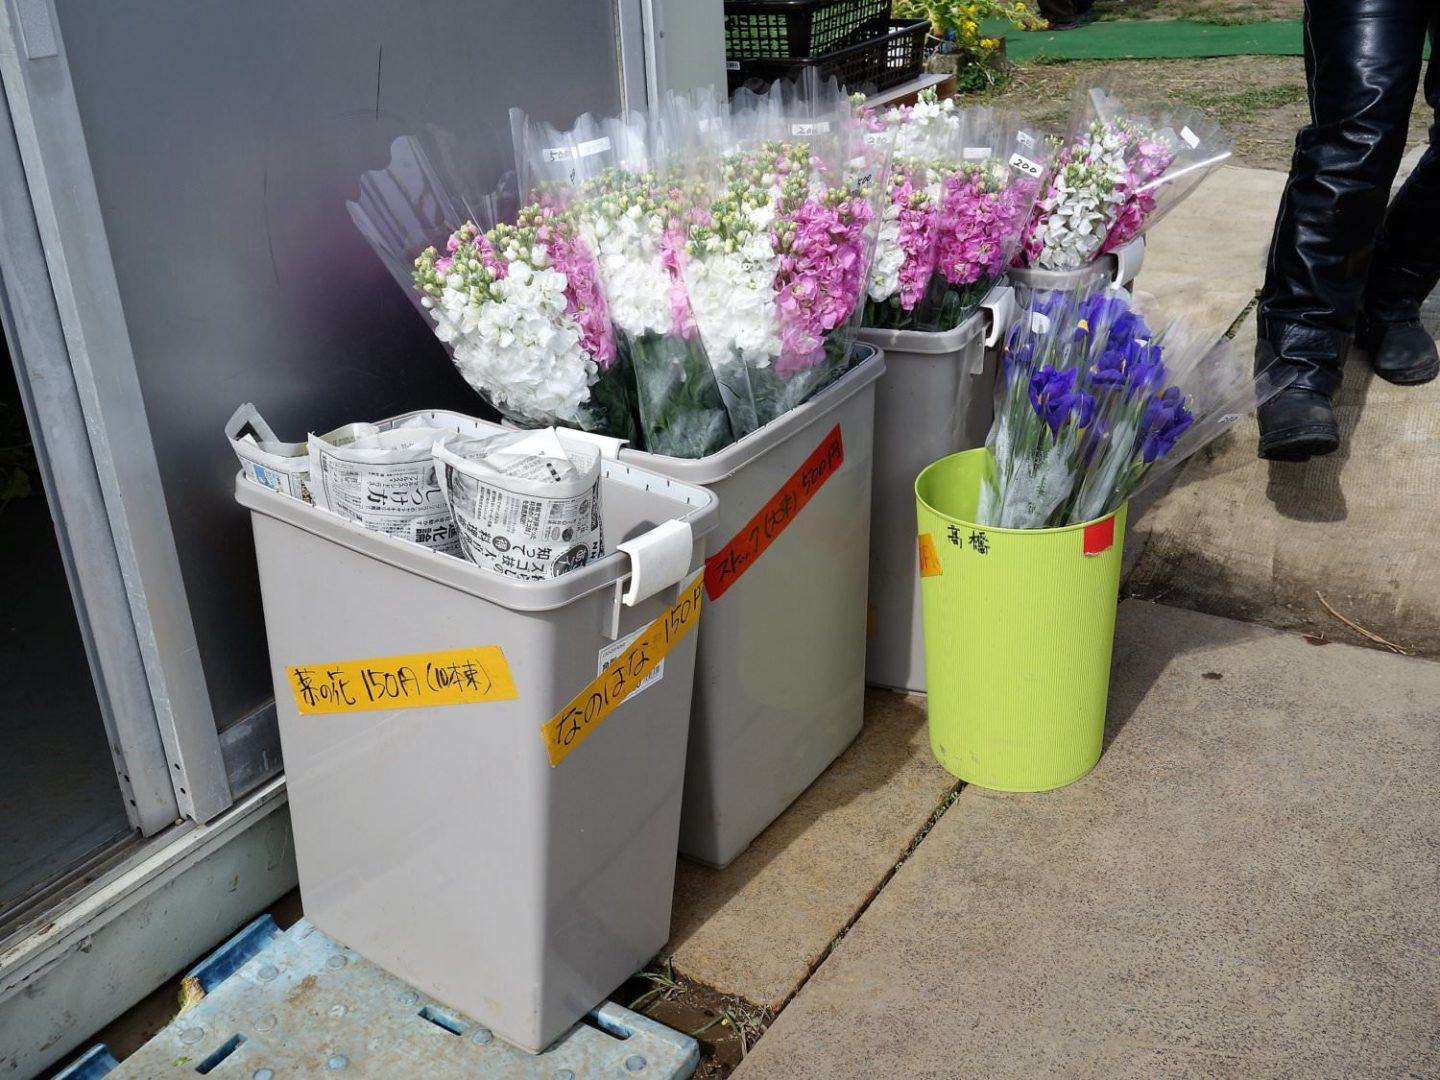 Wrapped up flowers to take home